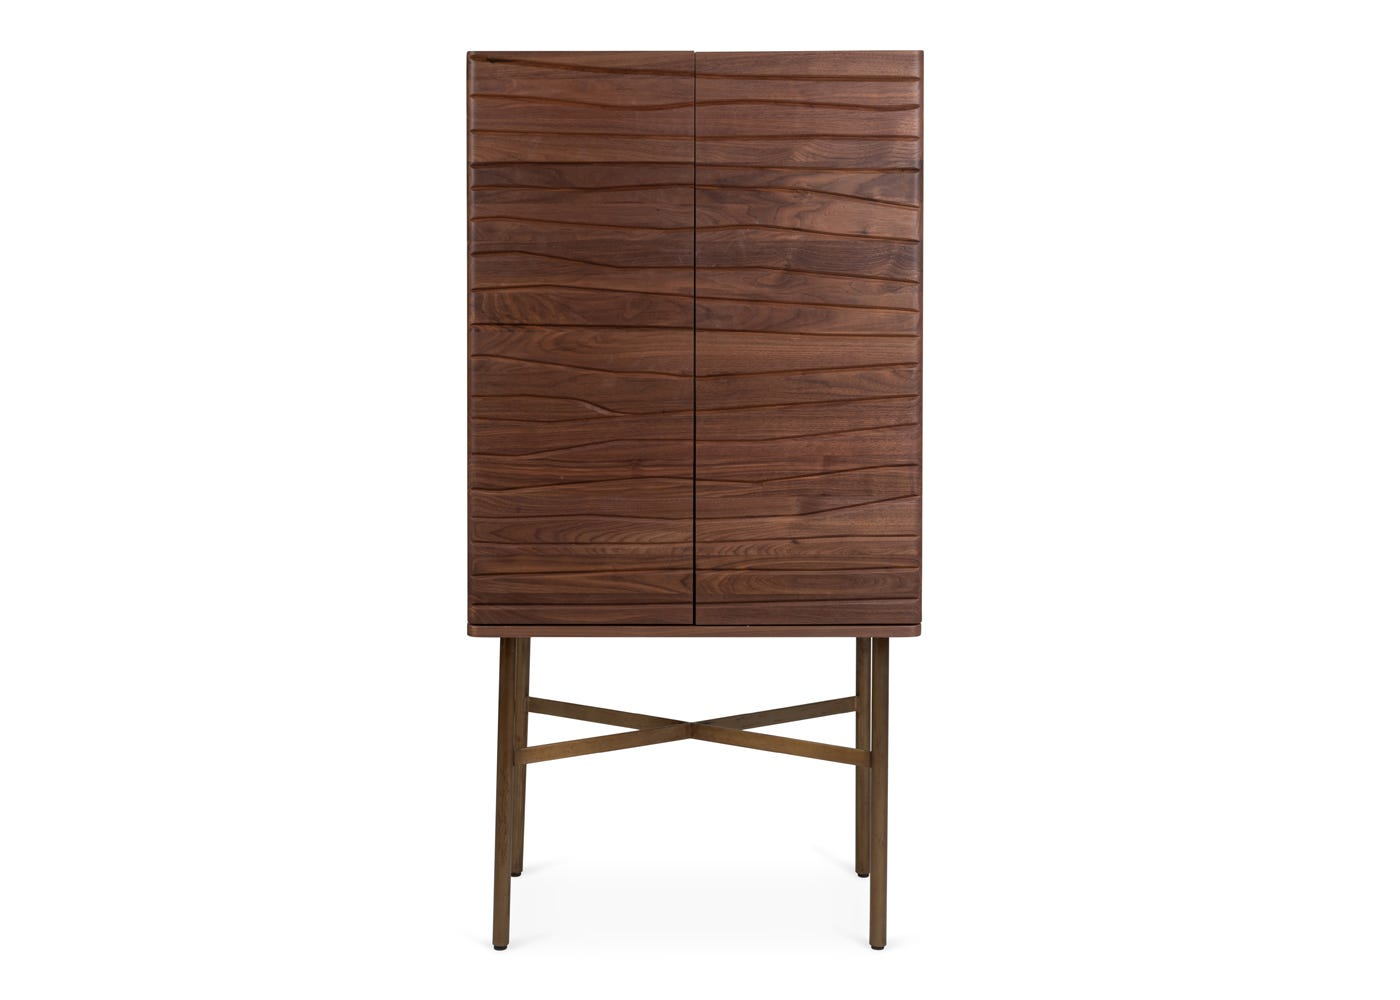 As shown: Valentina drinks cabinet - Front profile.